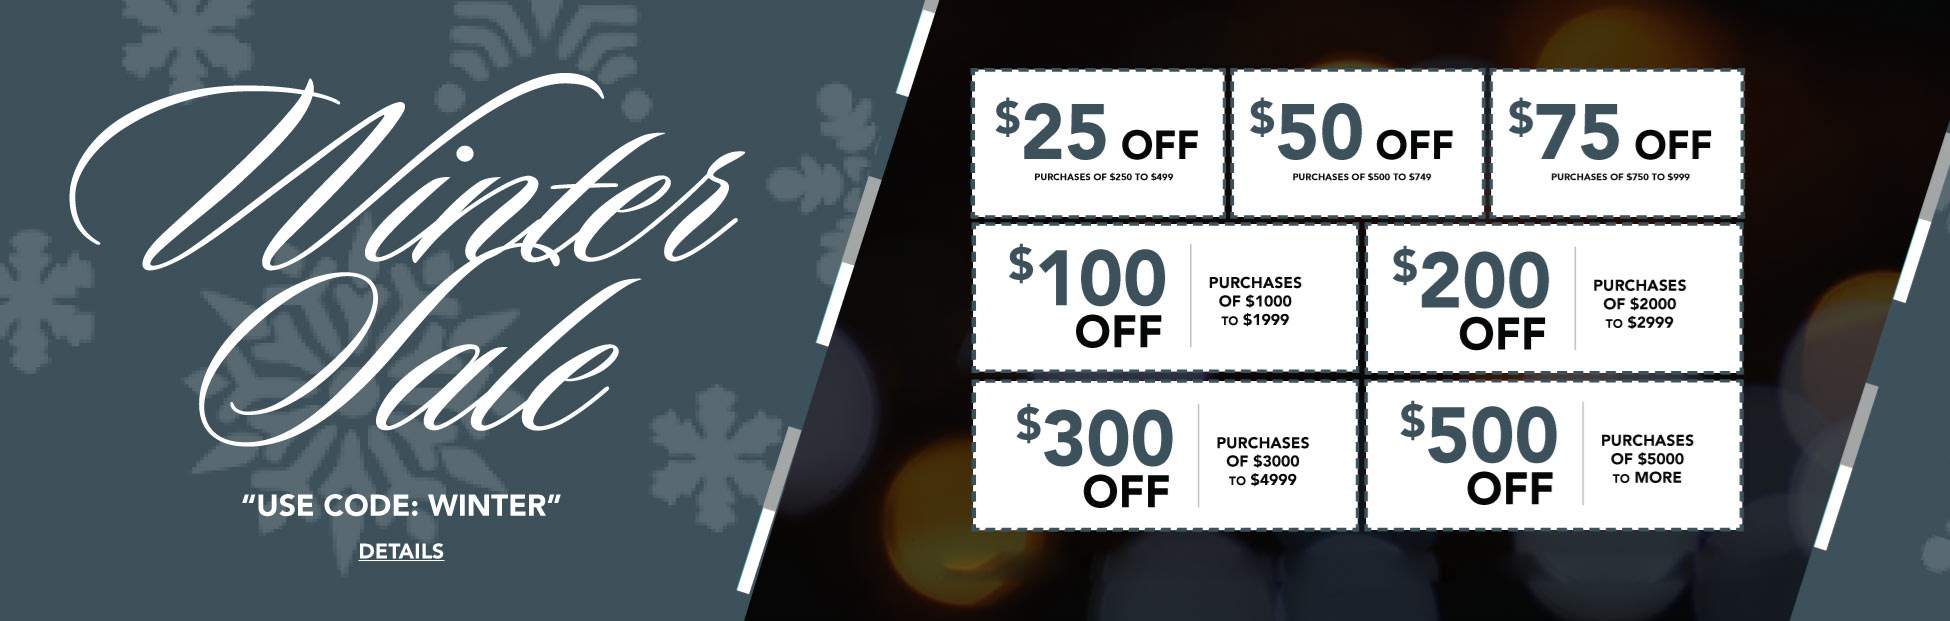 WINTER COUPONS